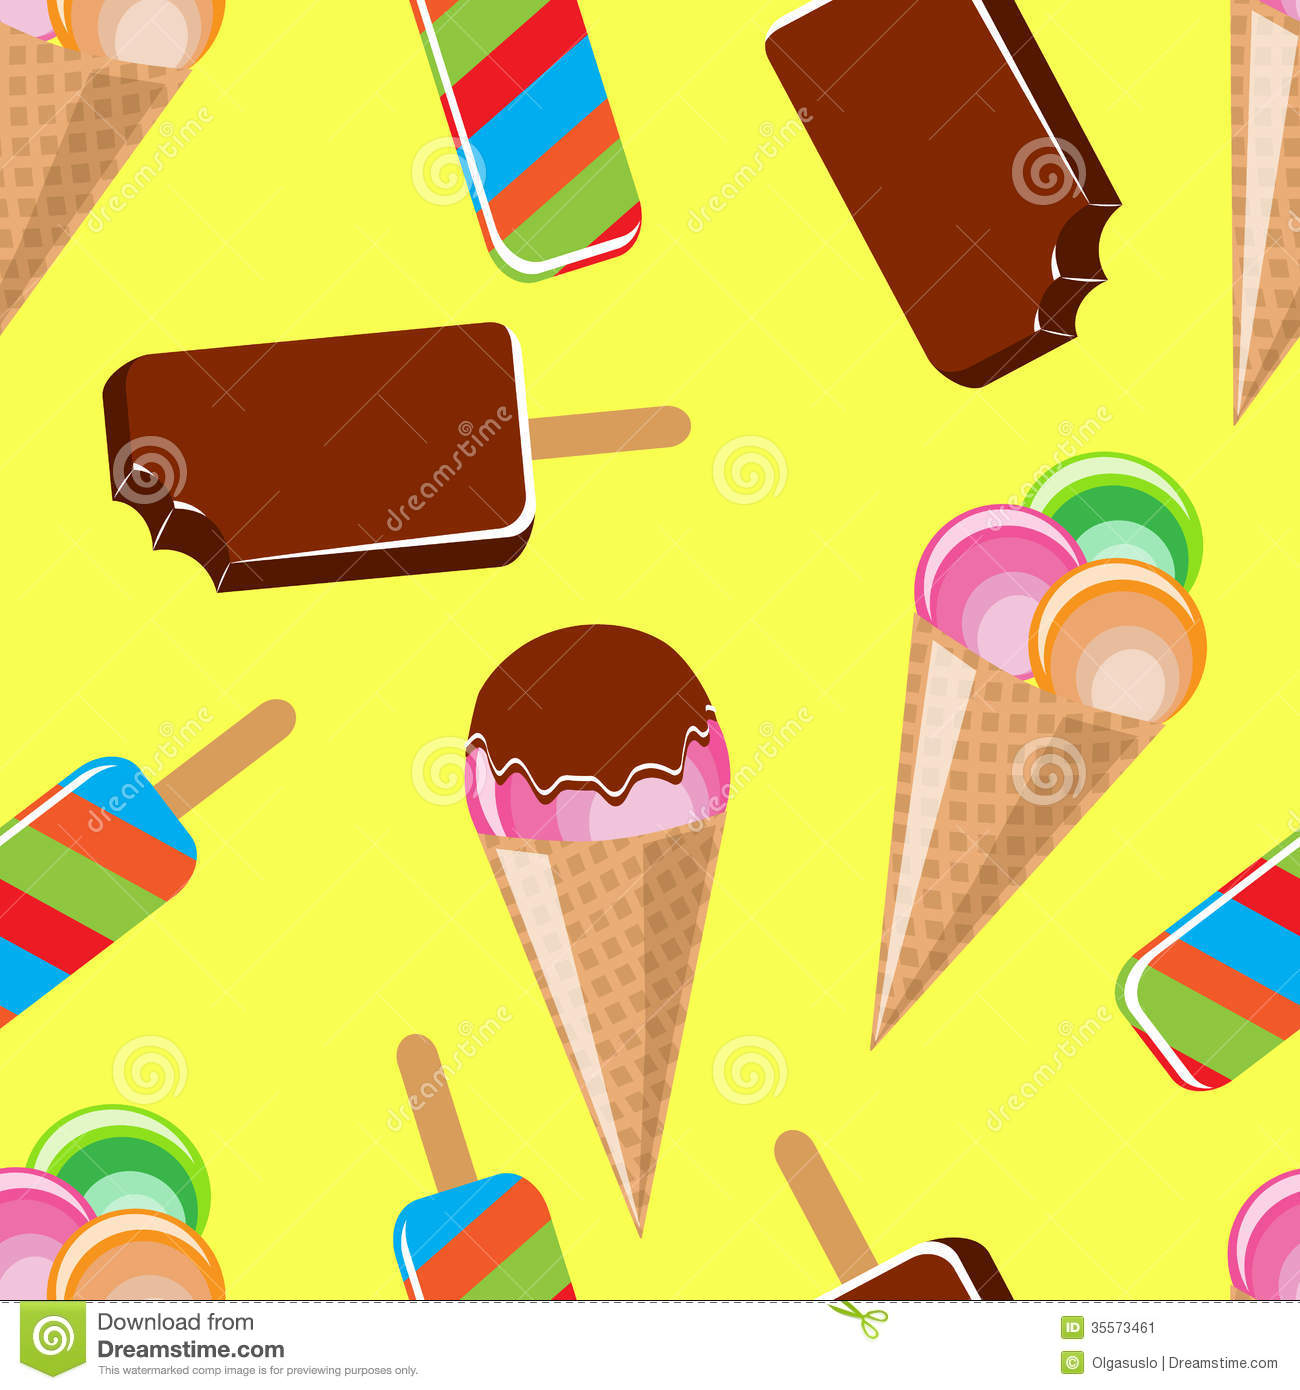 Seamless Ice Cream Wallpaper Royalty Free Stock Images: Seamless Background With Different Ice Cream Stock Image